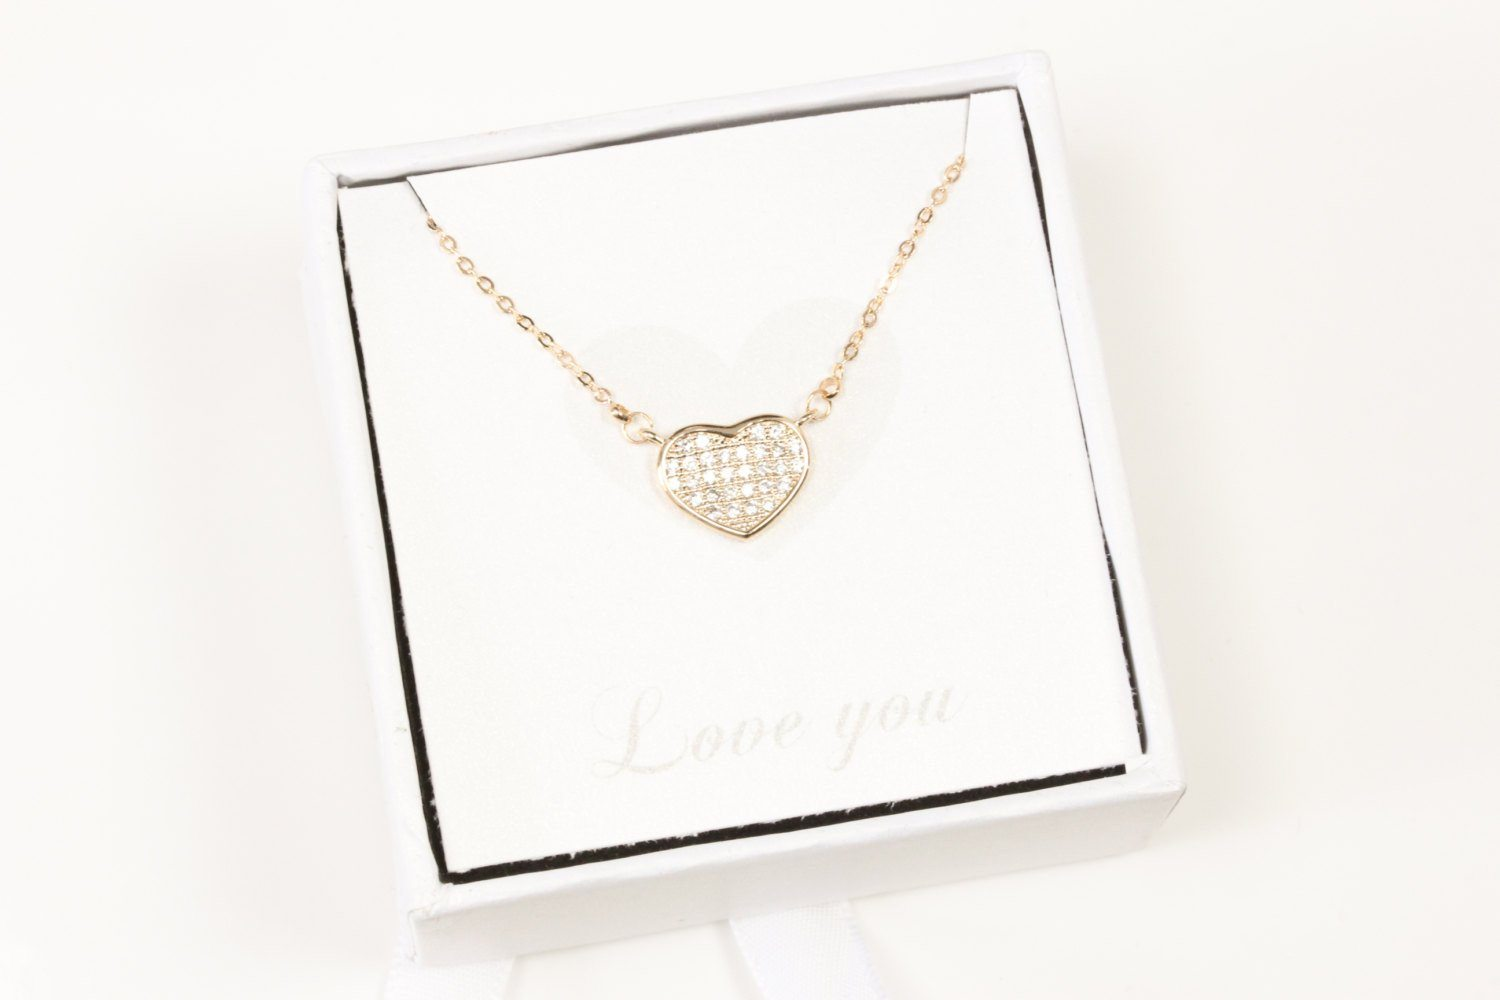 Valentines Day Gift, Tiny Dainty Rose Gold Heart Necklace Simp Beautiz